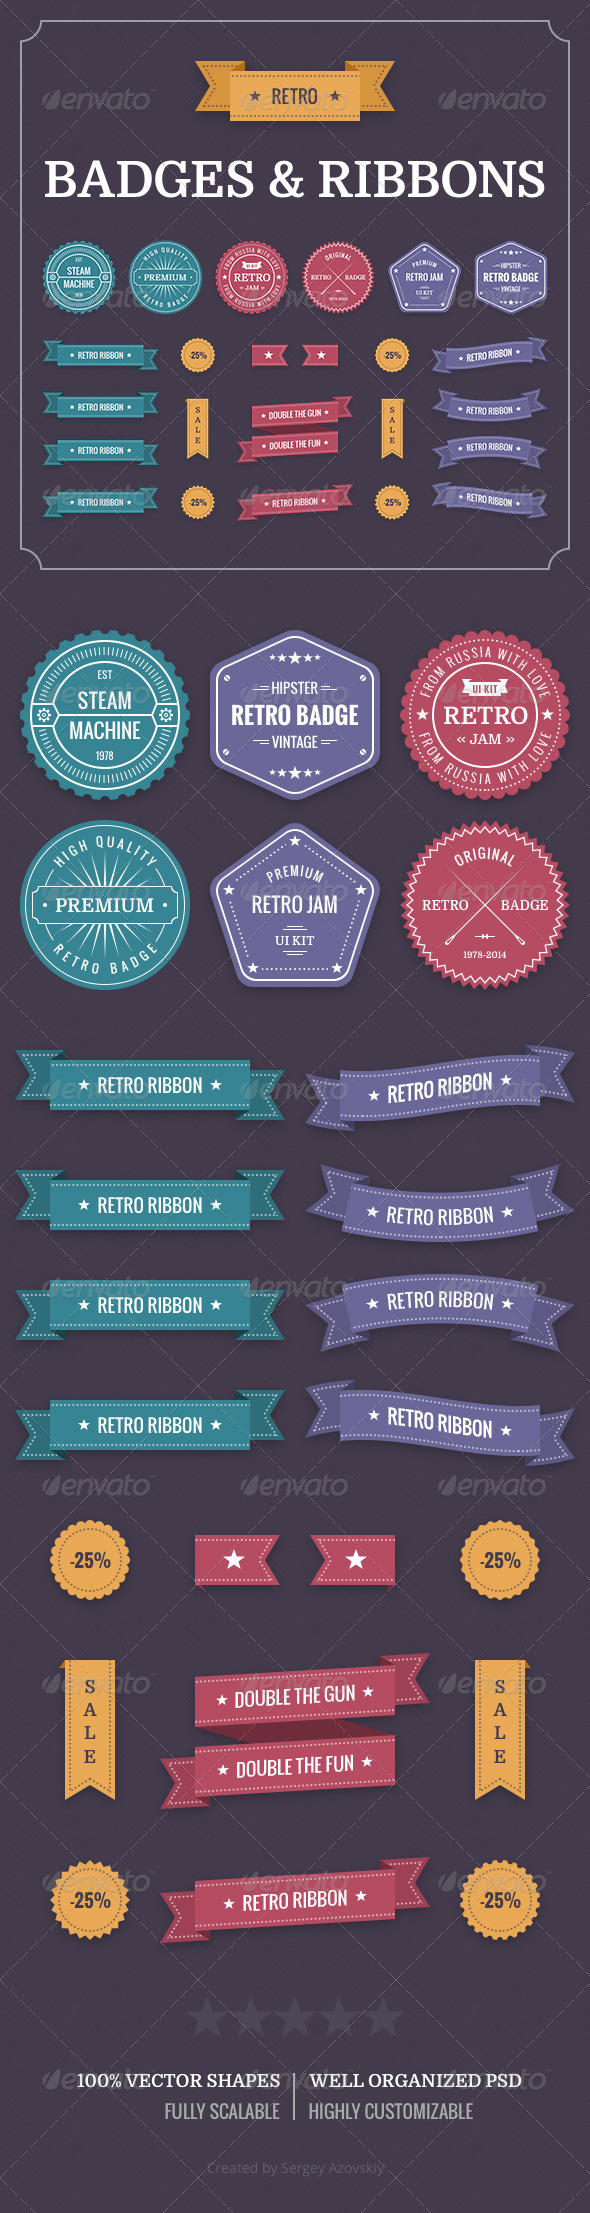 GraphicRiver Retro Badges & Ribbons 8530663